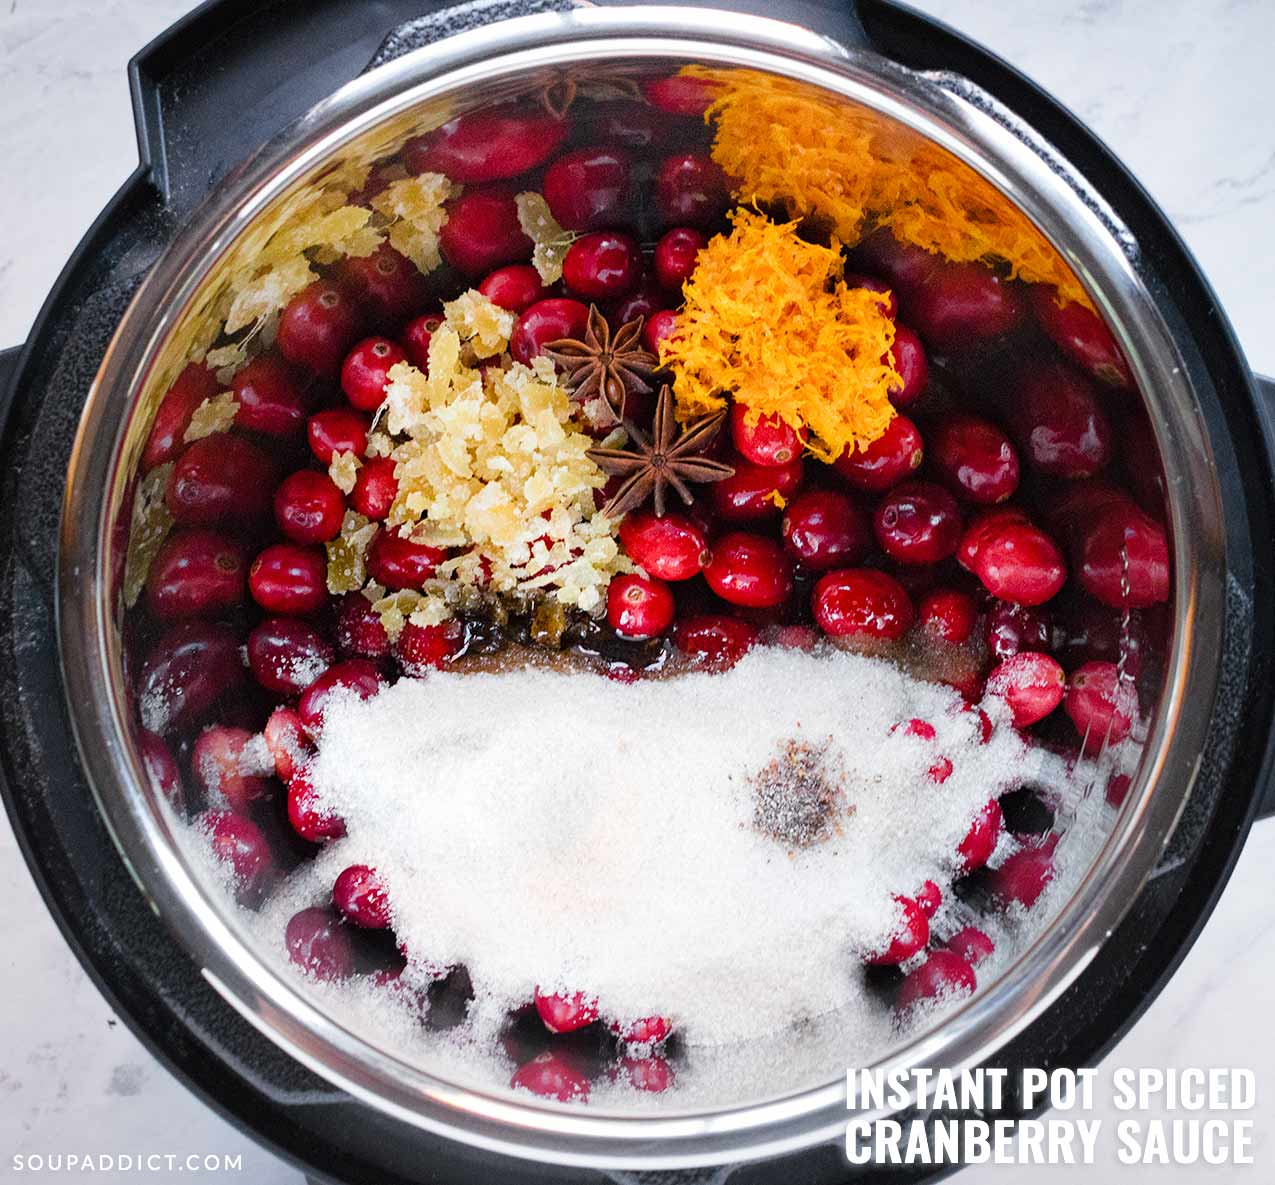 Instant Pot Spiced Cranberry Sauce - Recipe at SoupAddict.com